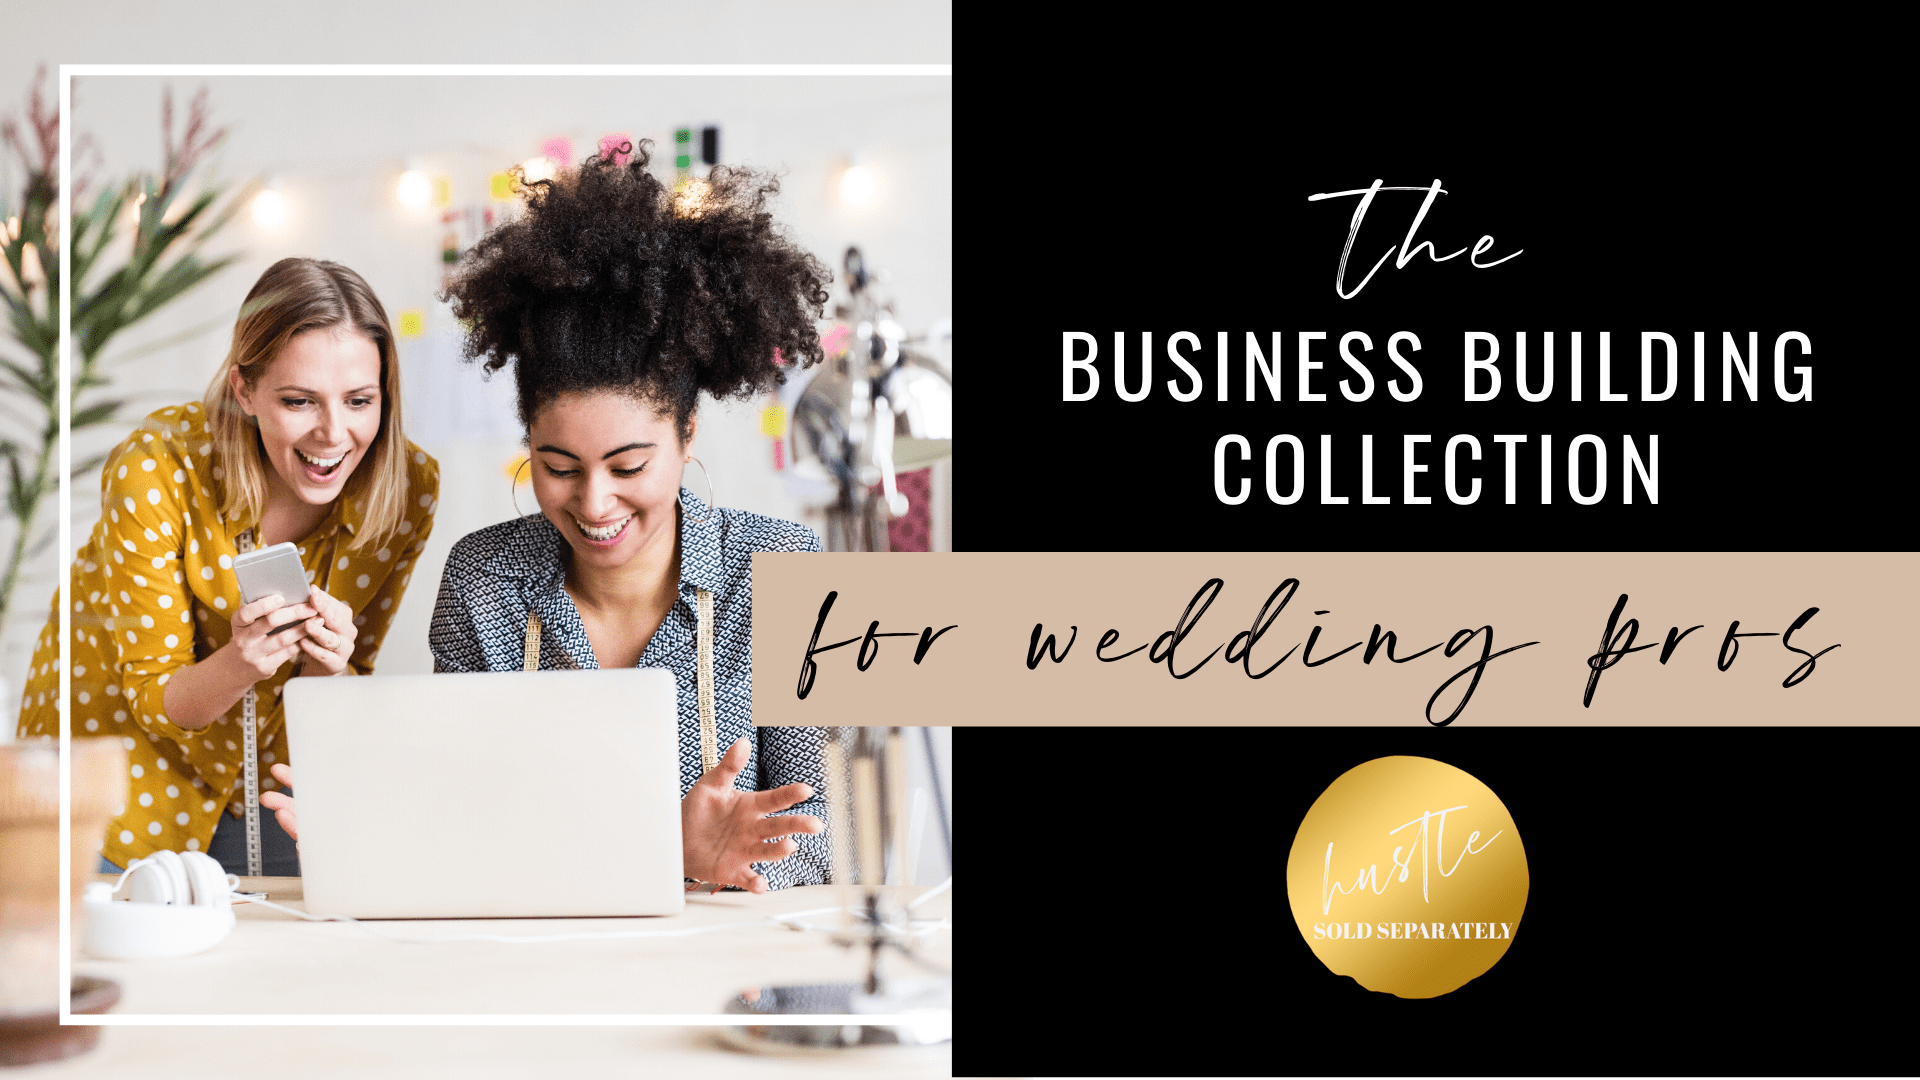 Hustle Sold Separately Wedding Business Building Collection